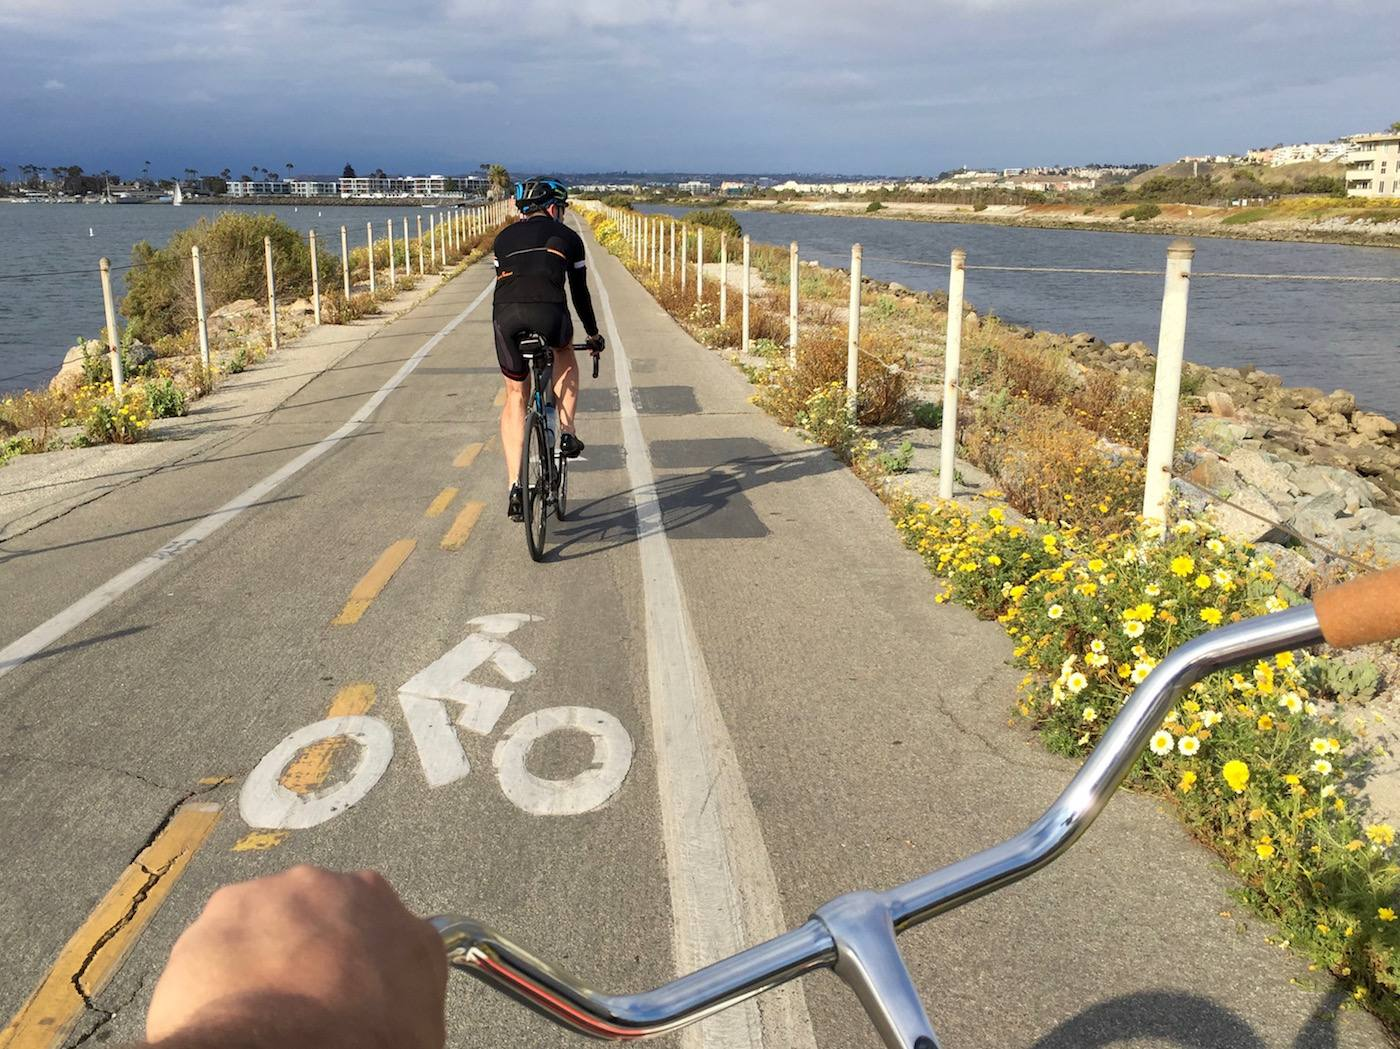 Marvin Braude Bike Trail in Playa del Rey